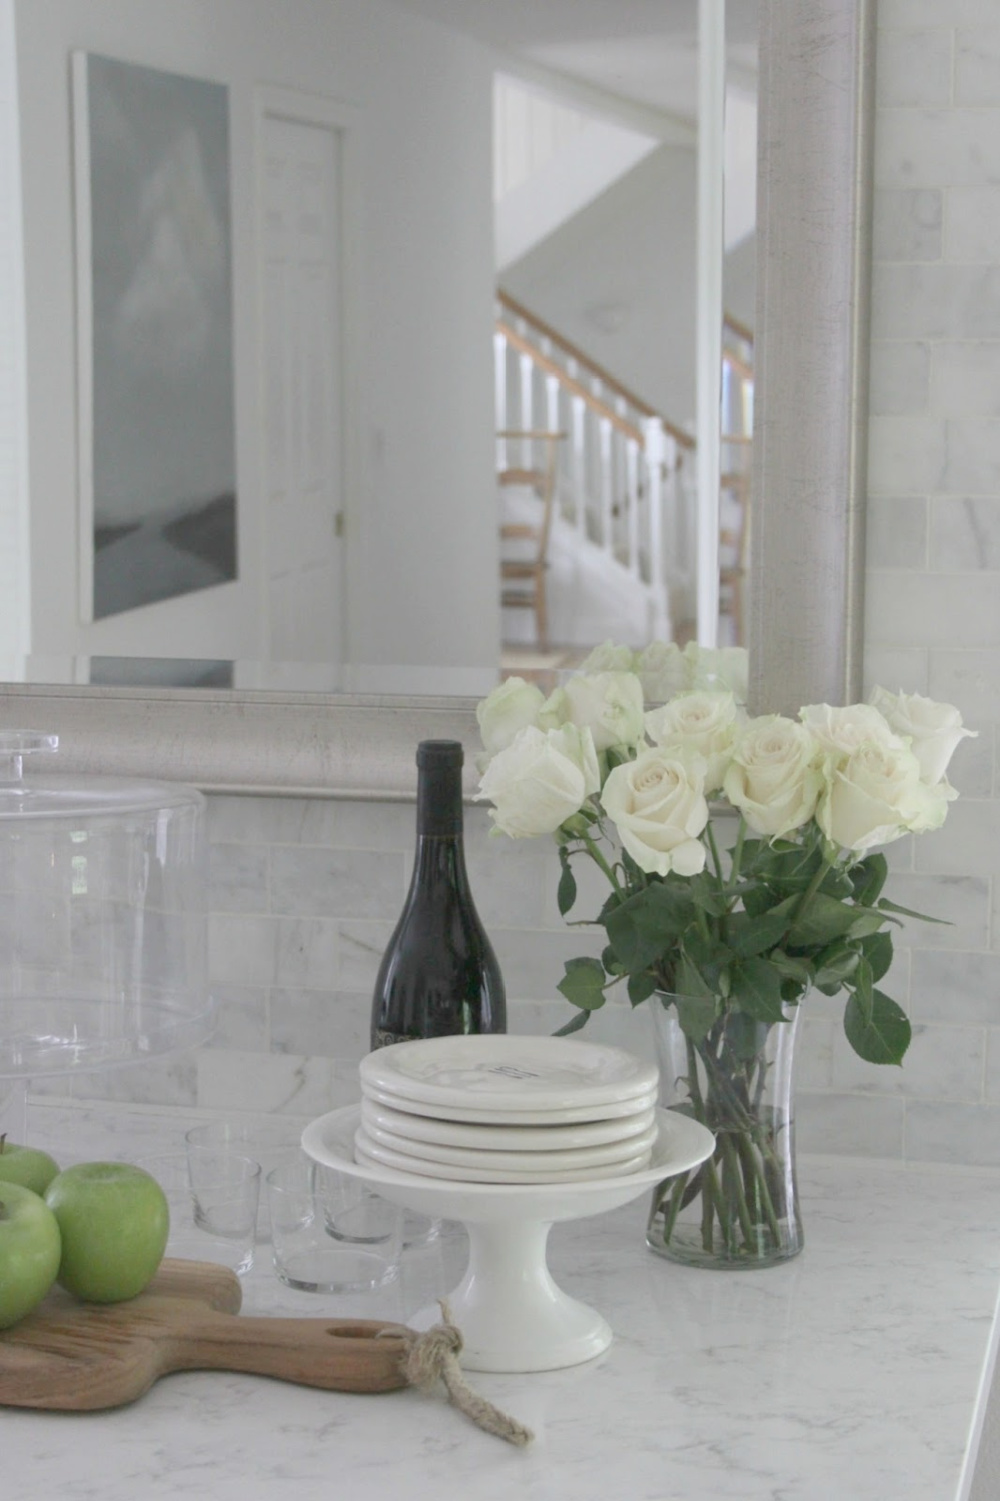 Viatera quartz countertop - Minuet. European farmhouse style and French Nordic cottage decor in our fixer upper - Hello Lovely Studio. Come see the renovation photos in Before & After: European Country Style Fixer Upper.